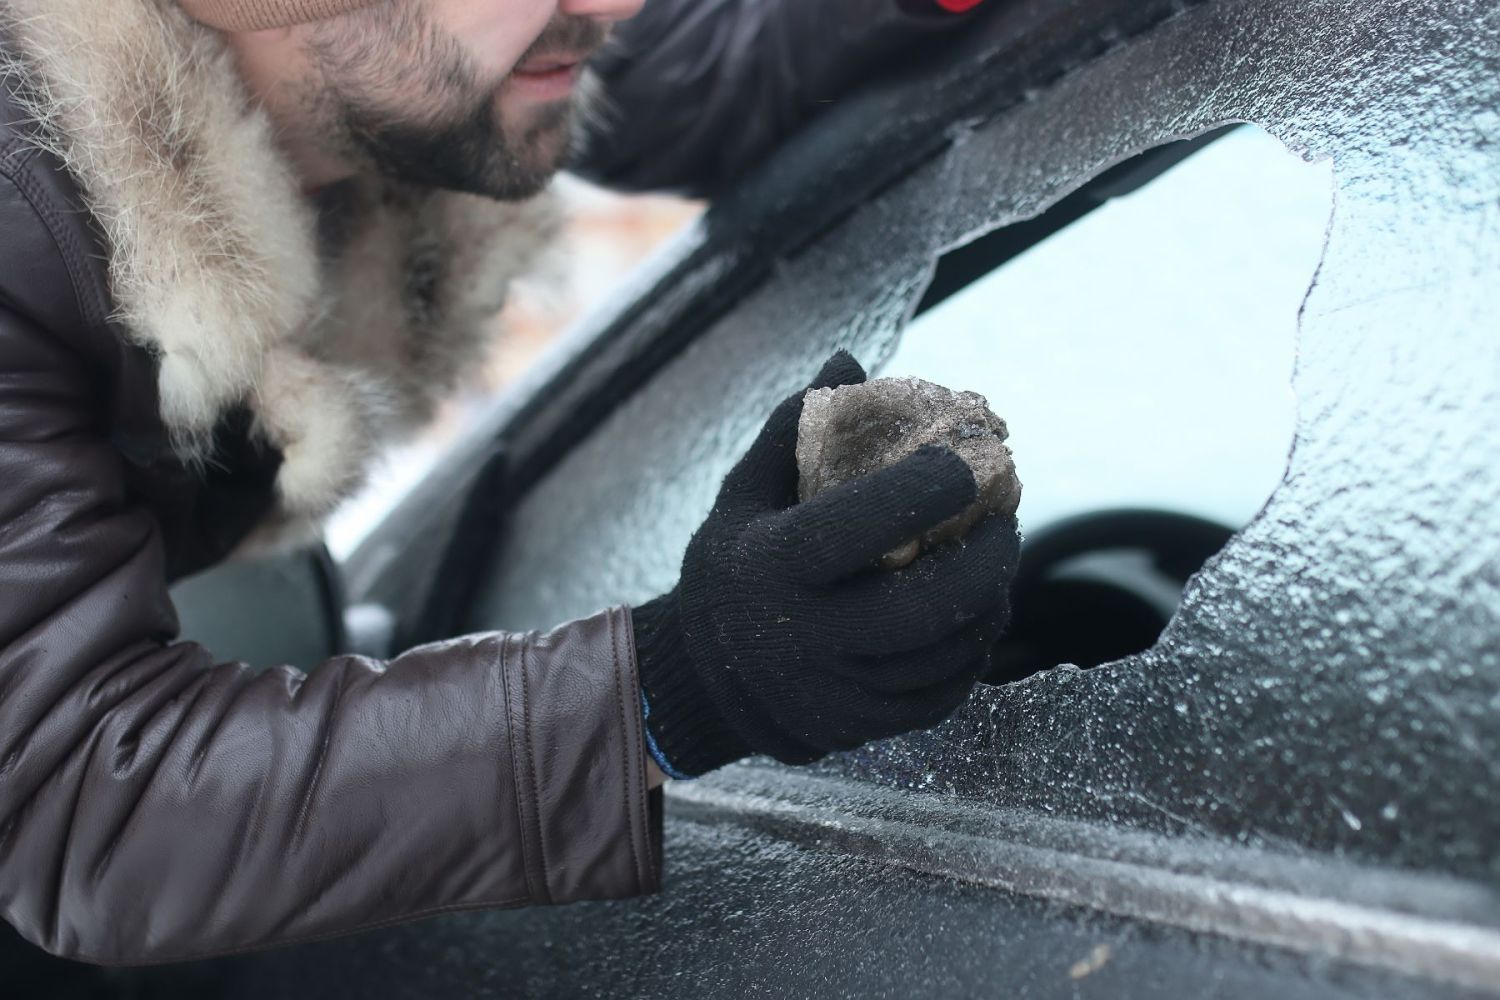 Car theft winter